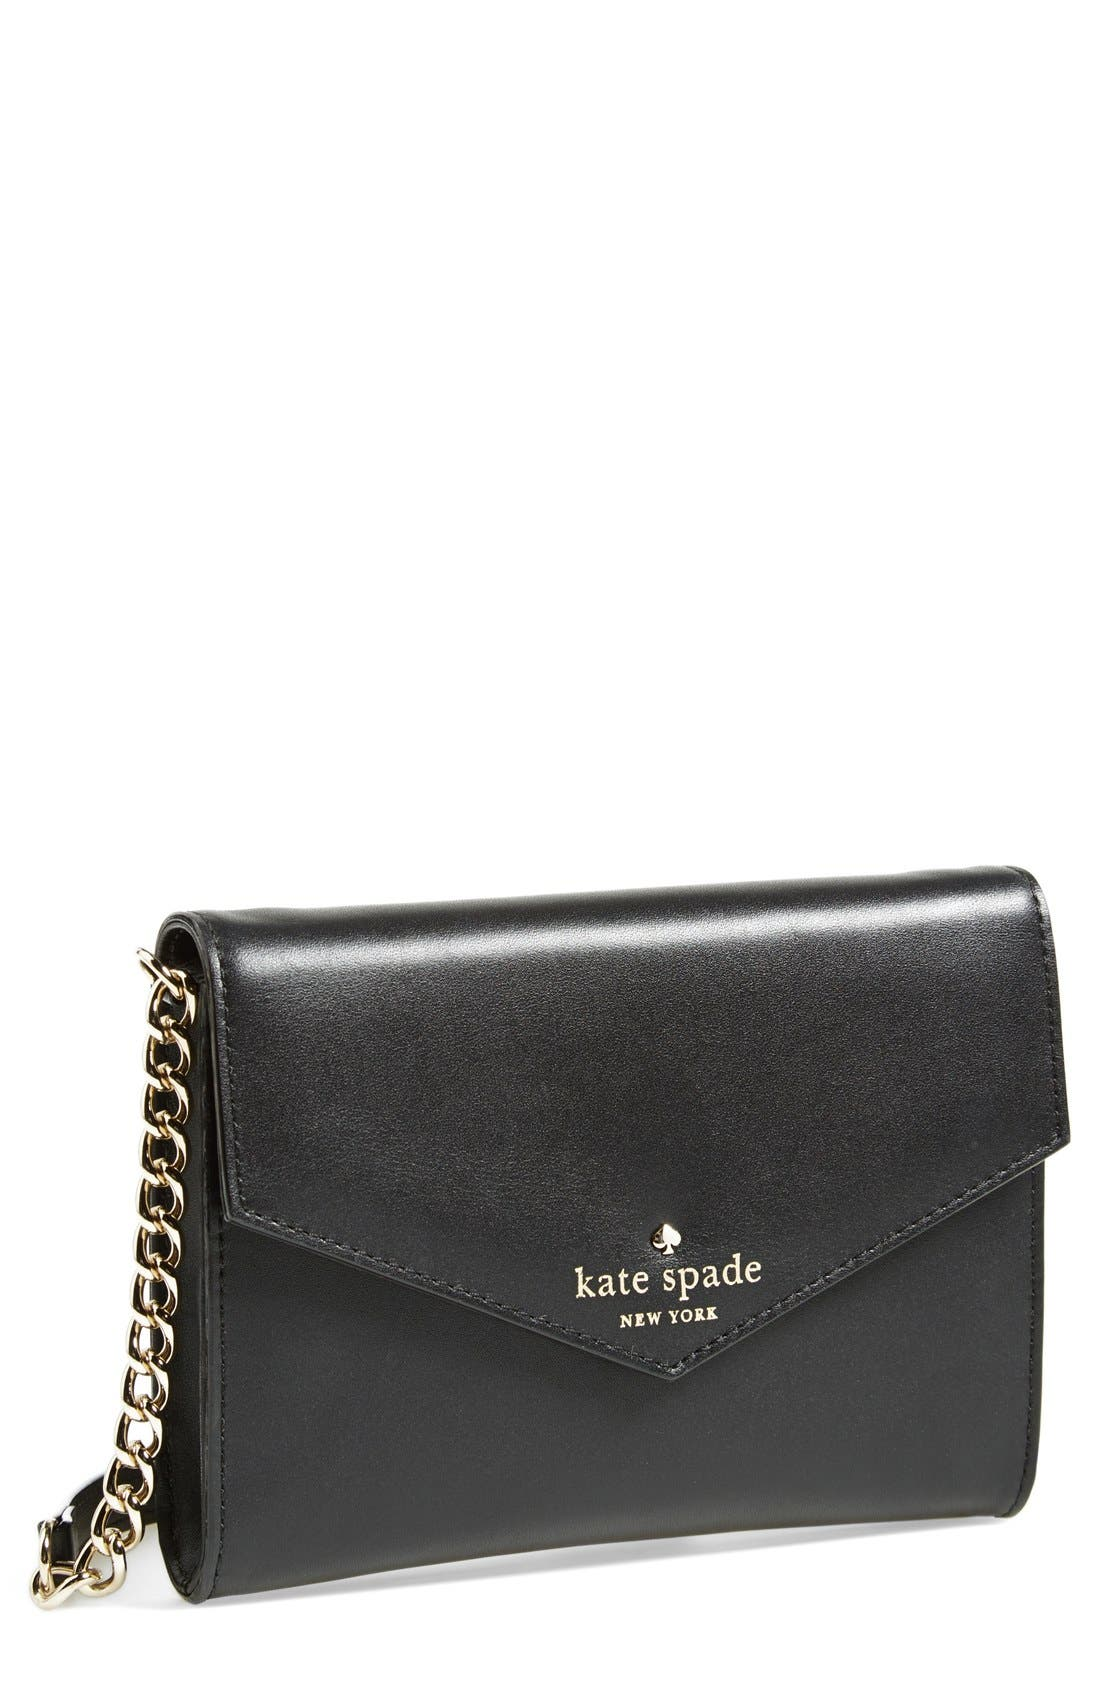 Alternate Image 1 Selected - kate spade new york 'branton square - monday' crossbody bag (Nordstrom Exclusive)